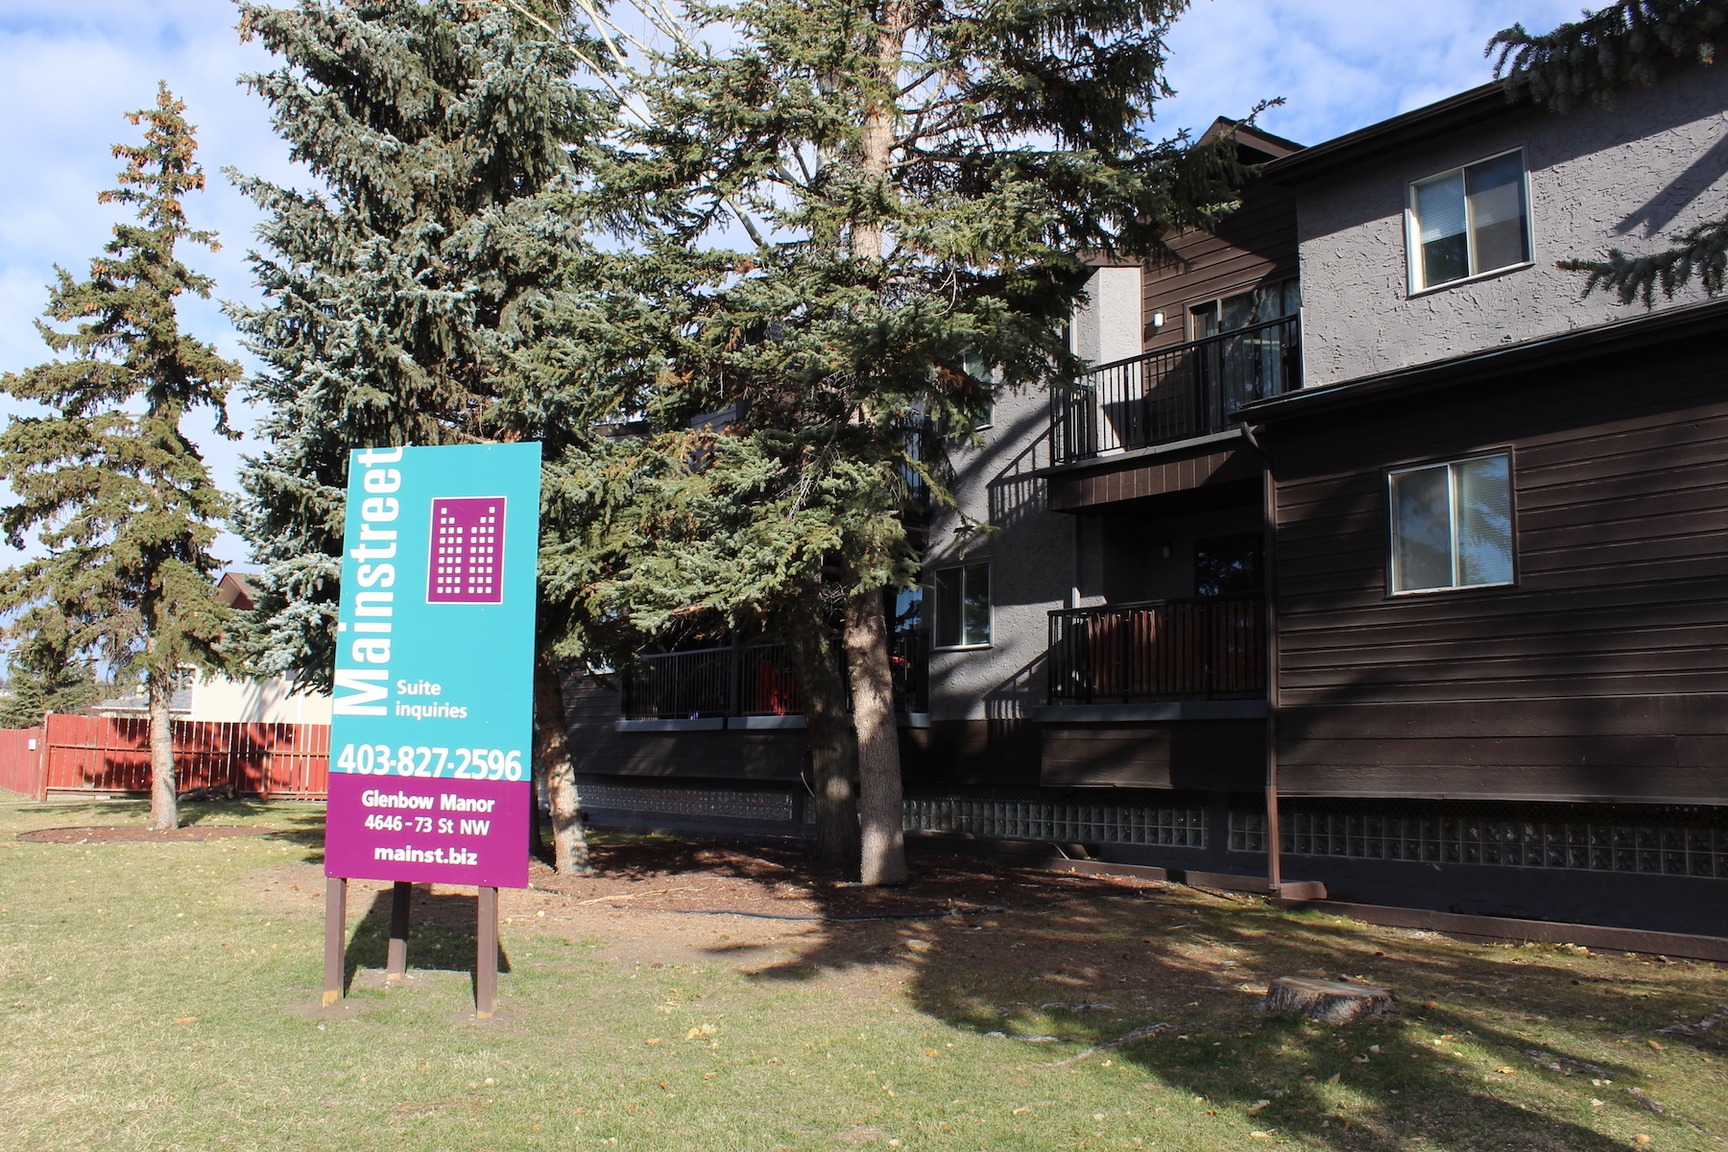 4646 73 Street NW - 1099CAD / month